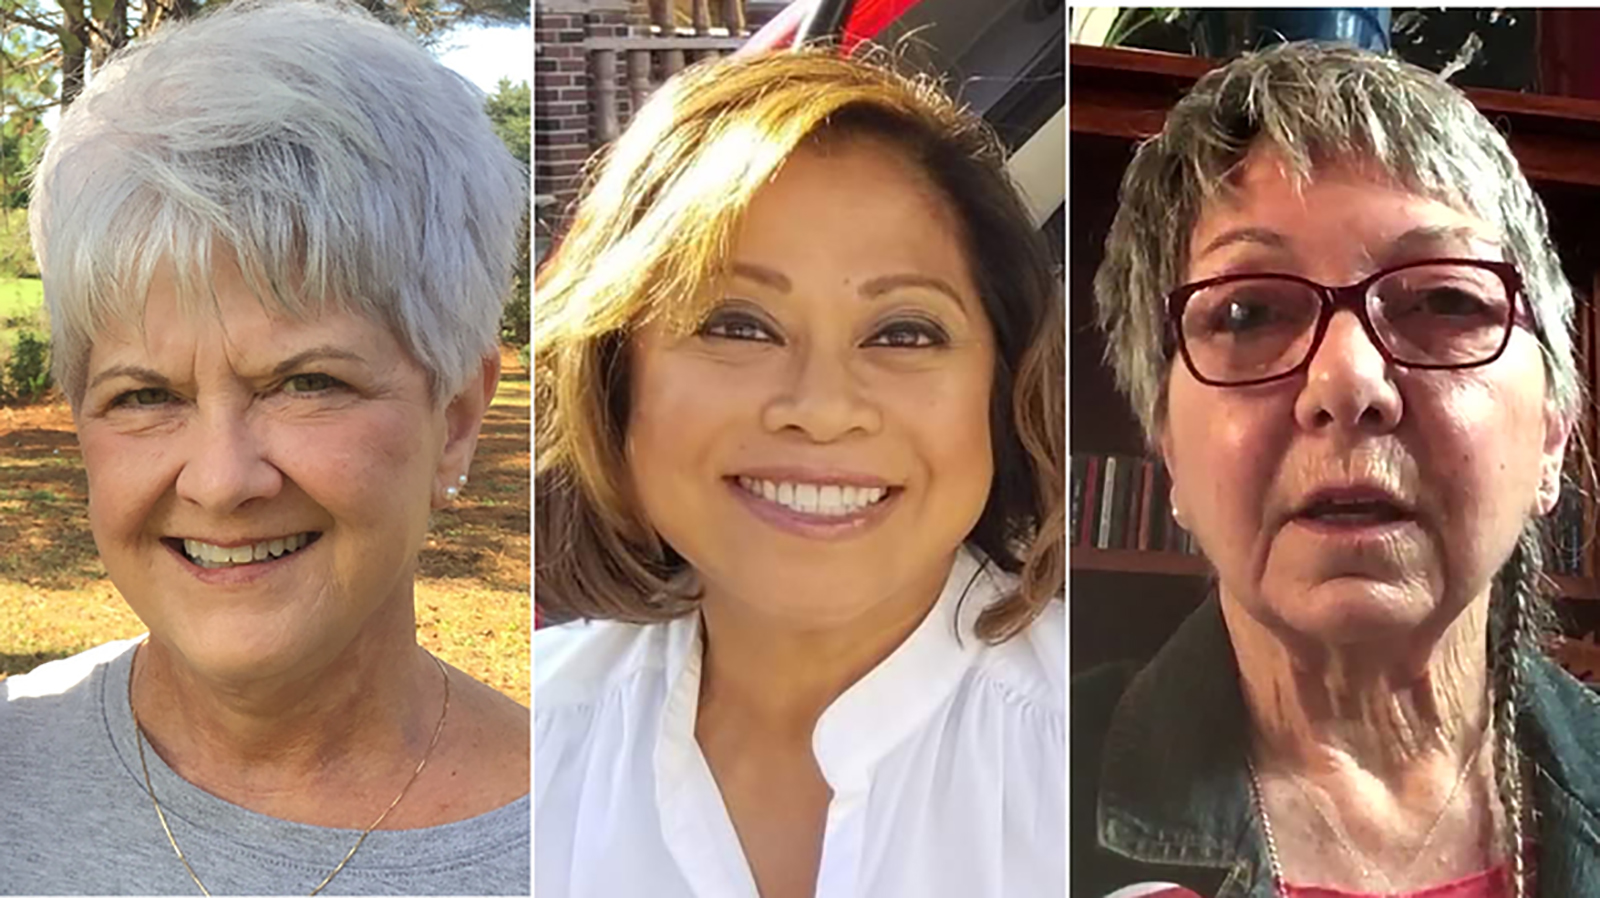 These retired nurses and many others were in urgent demand this year to fight Covid-19. From left to right: Mary Milliard, Evelyn Ochoa-Celano, Juliana Morawski.